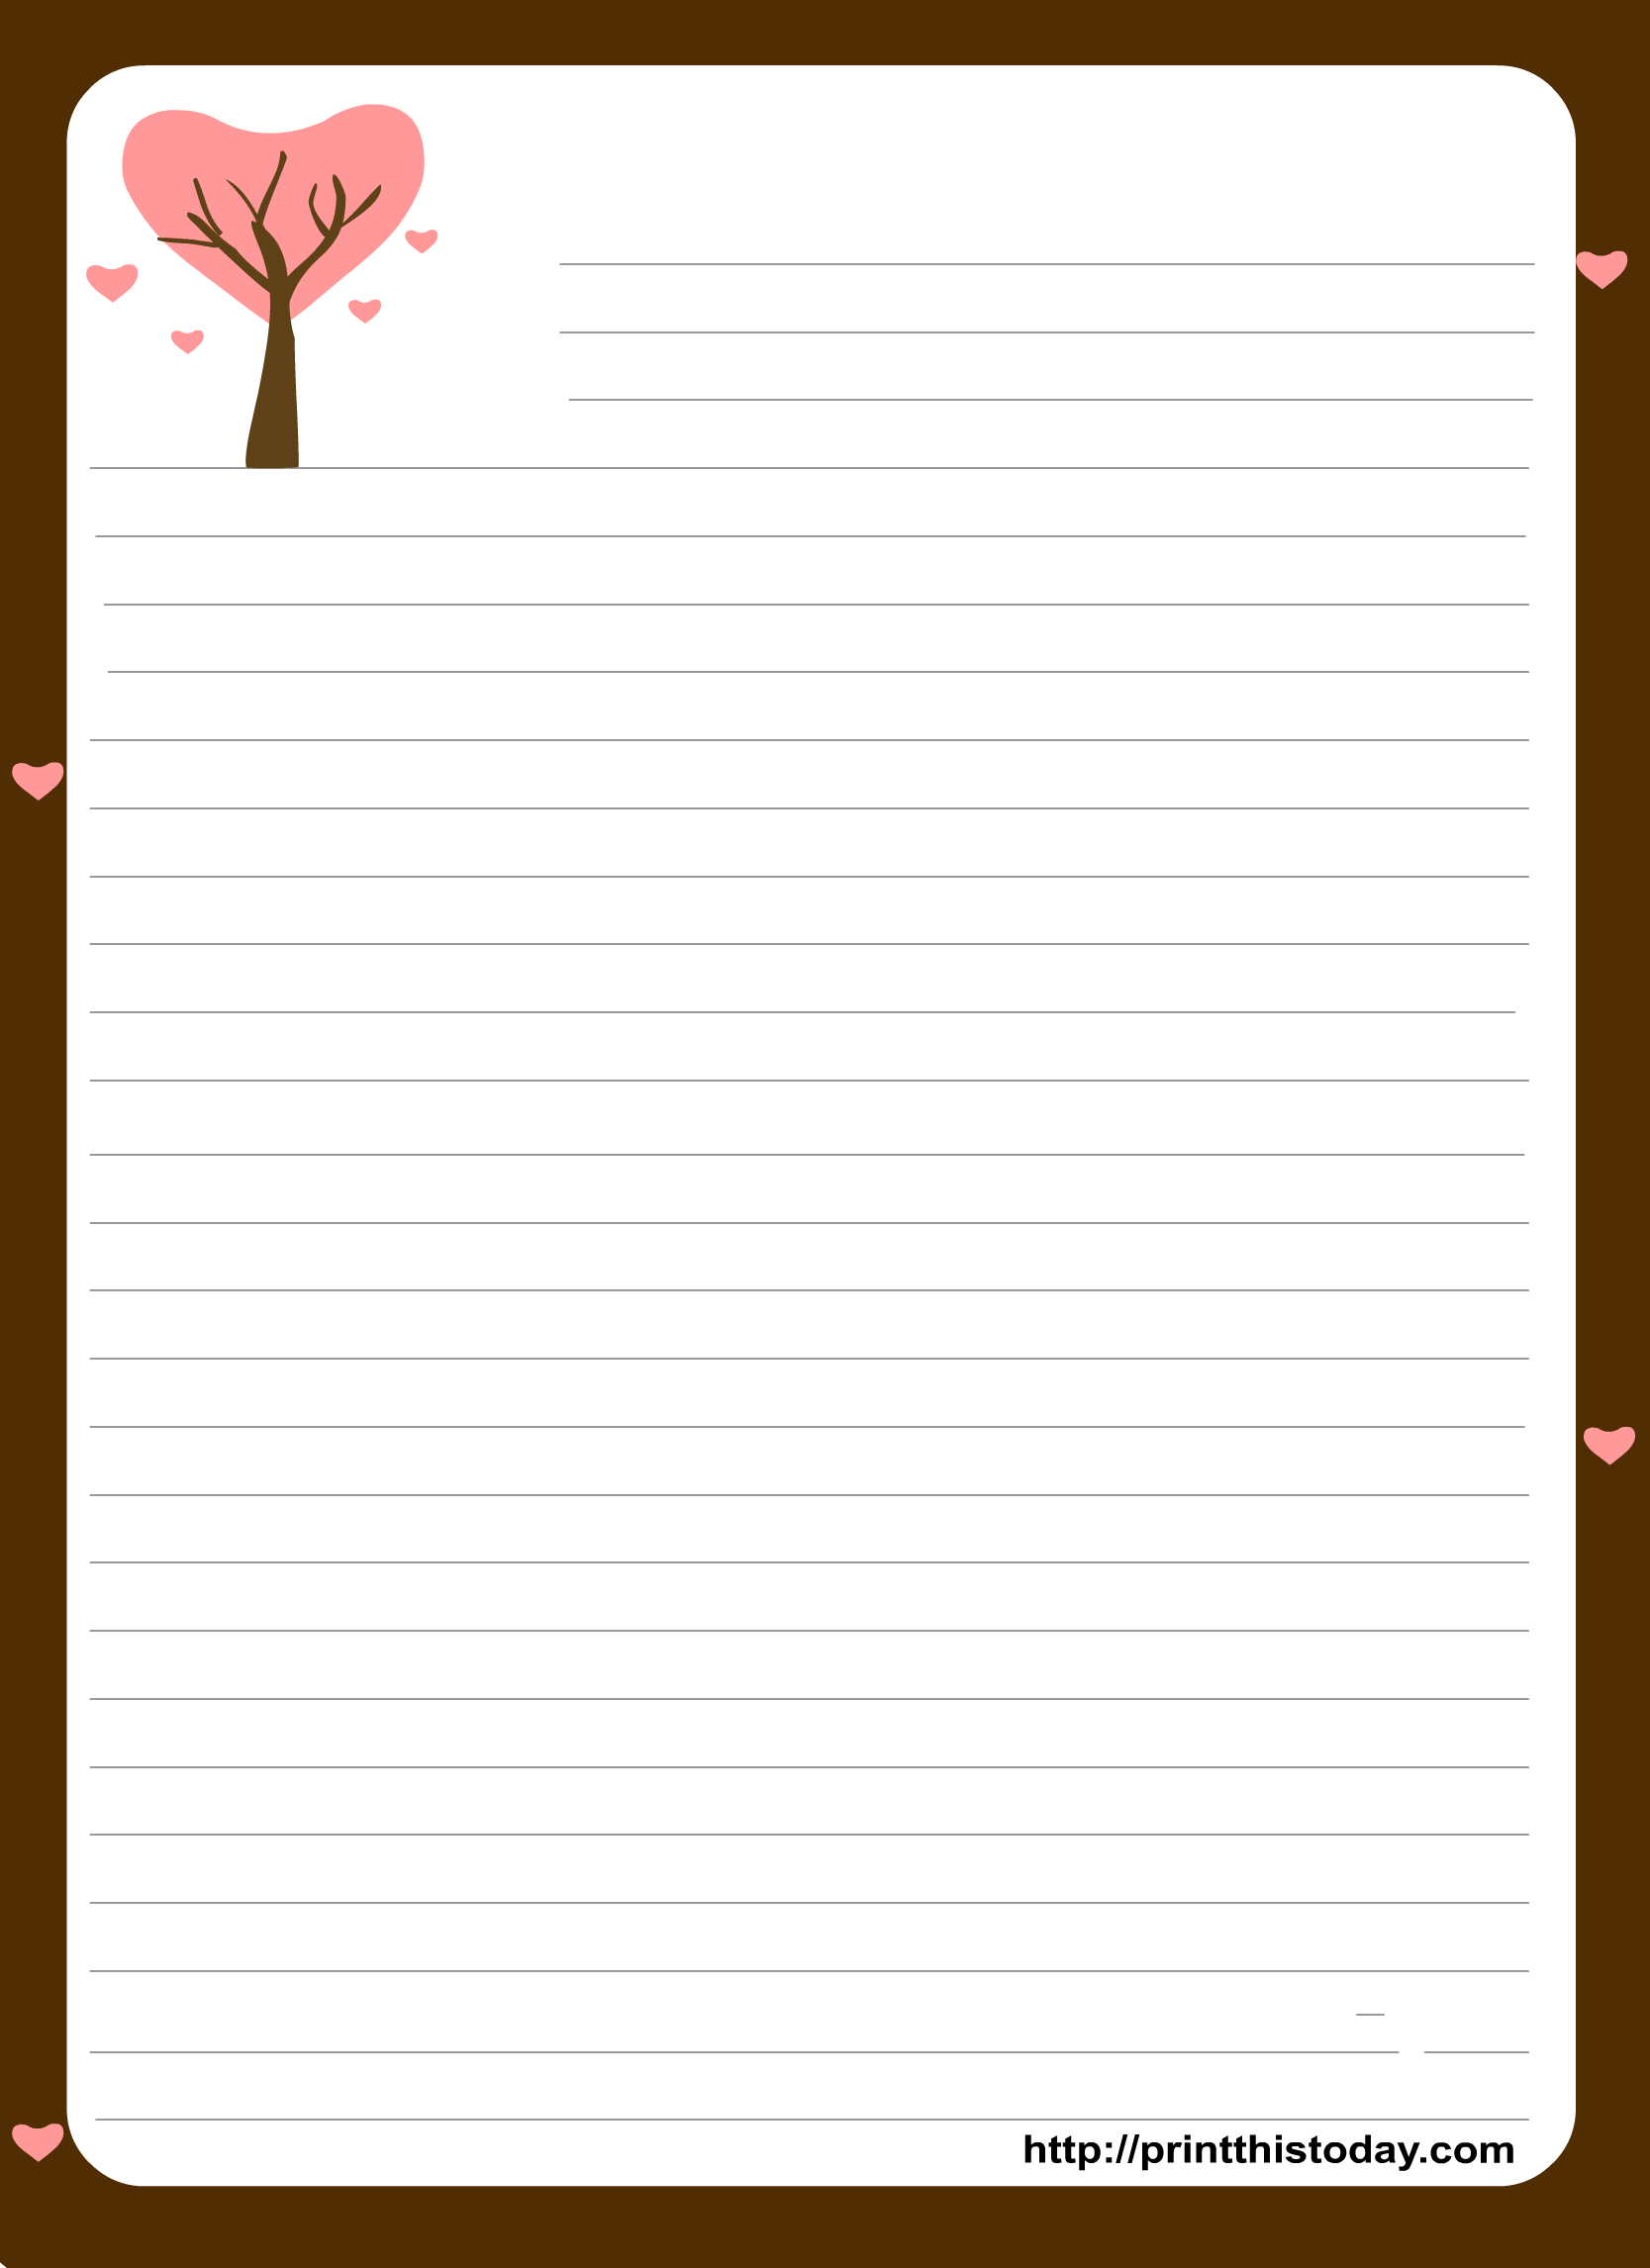 Free Printable Lined Stationary - FREE DOWNLOAD - Aashe